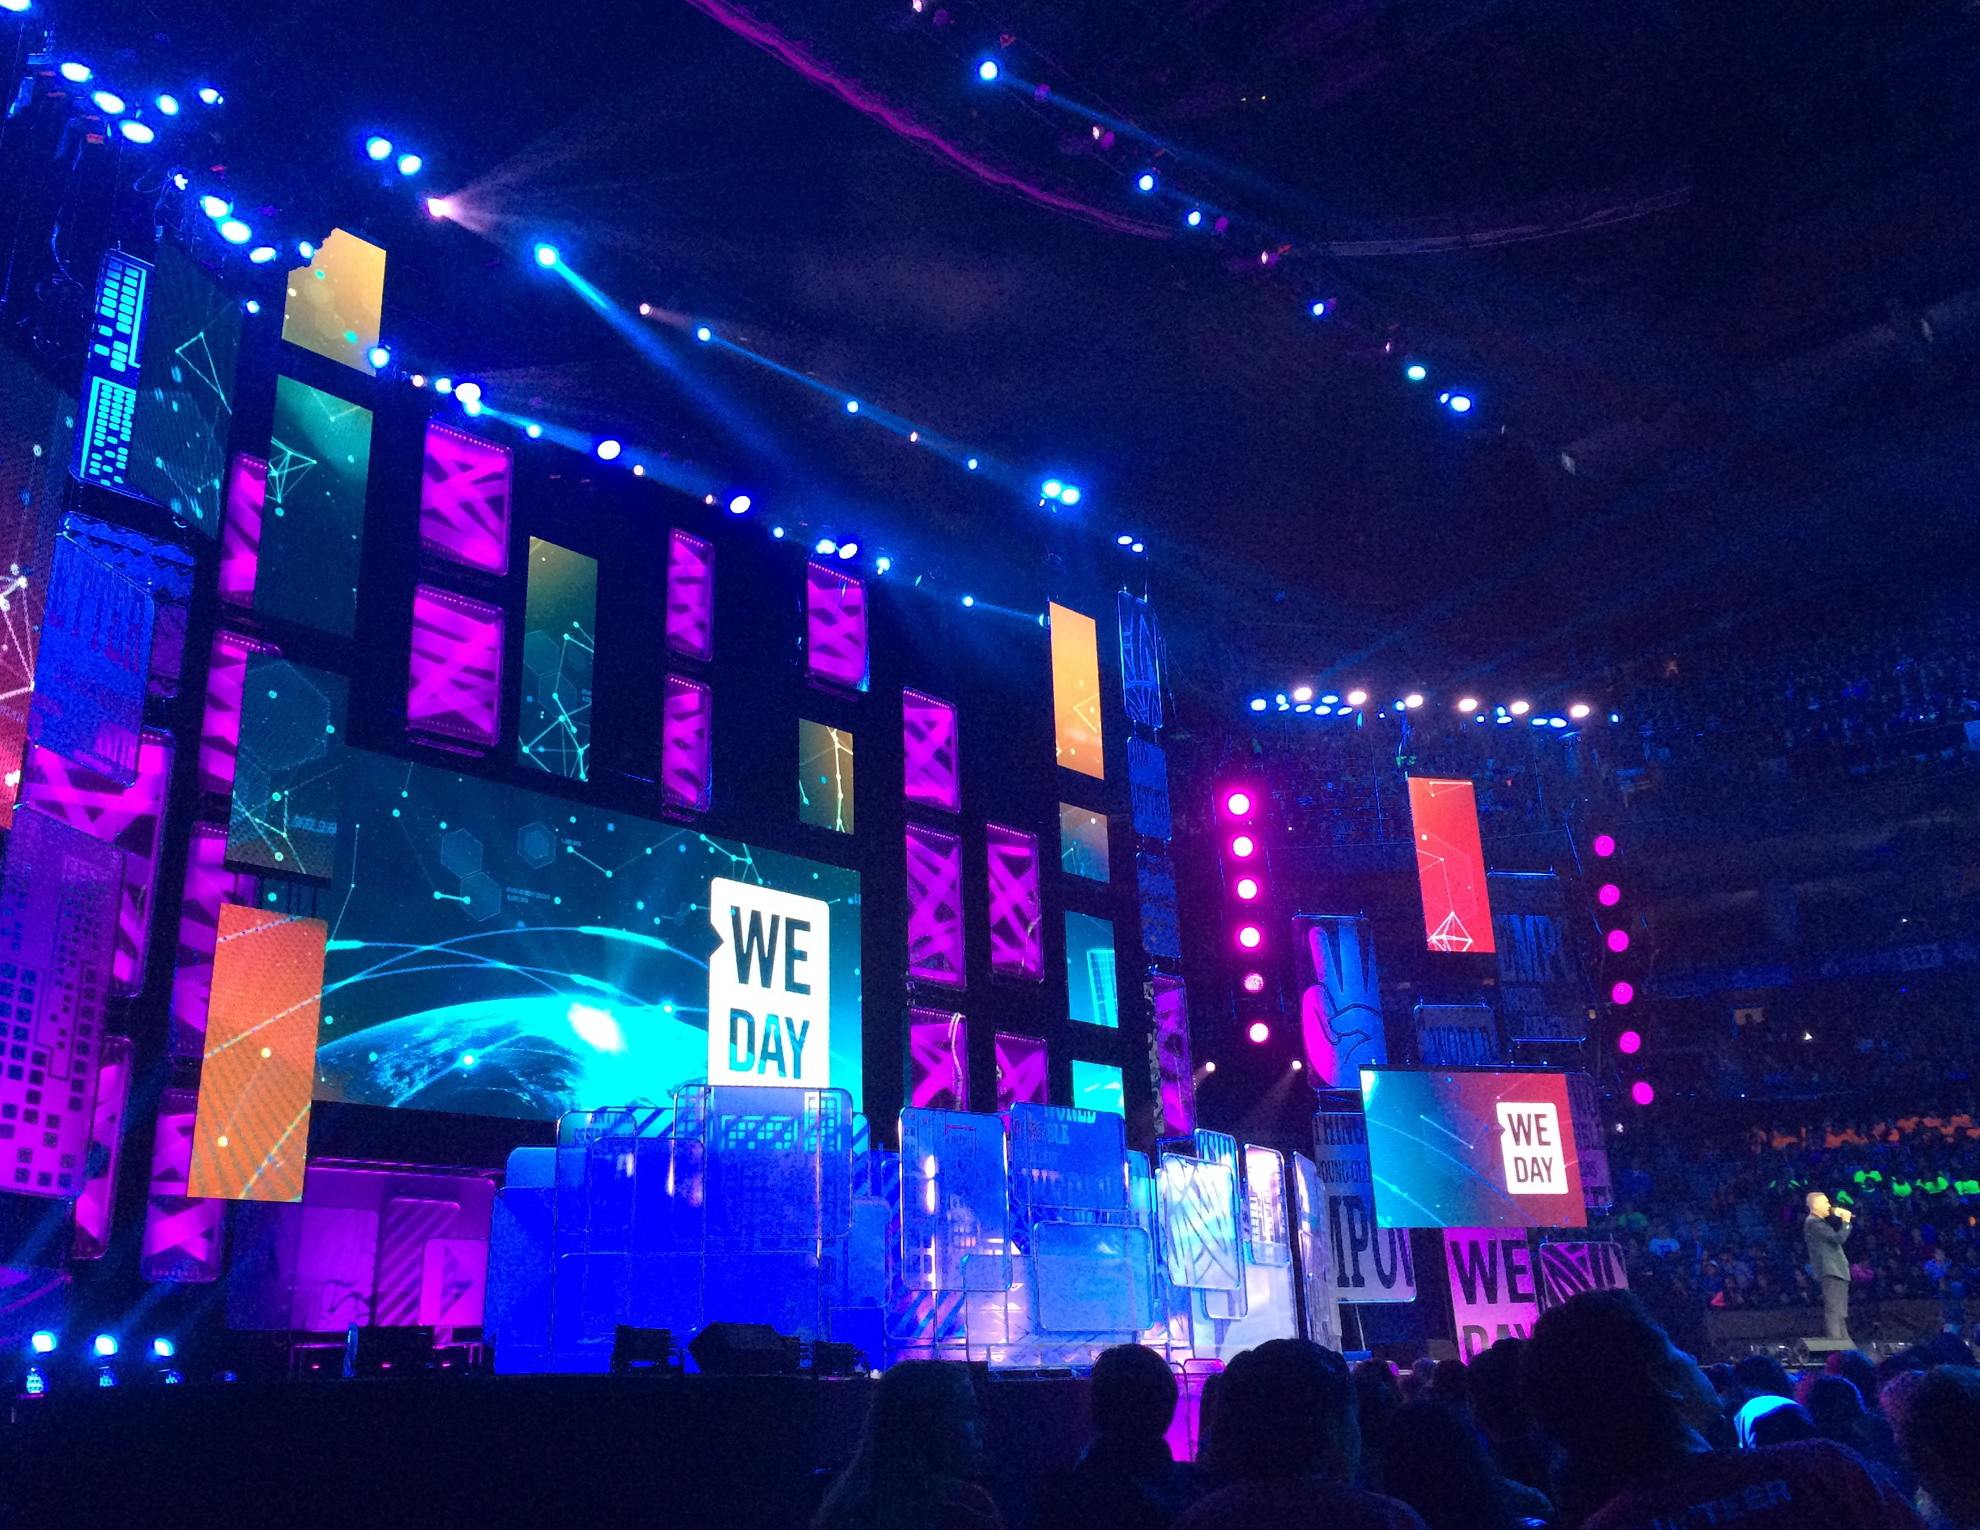 Top 10 We Day Quotes To Inspire Kids